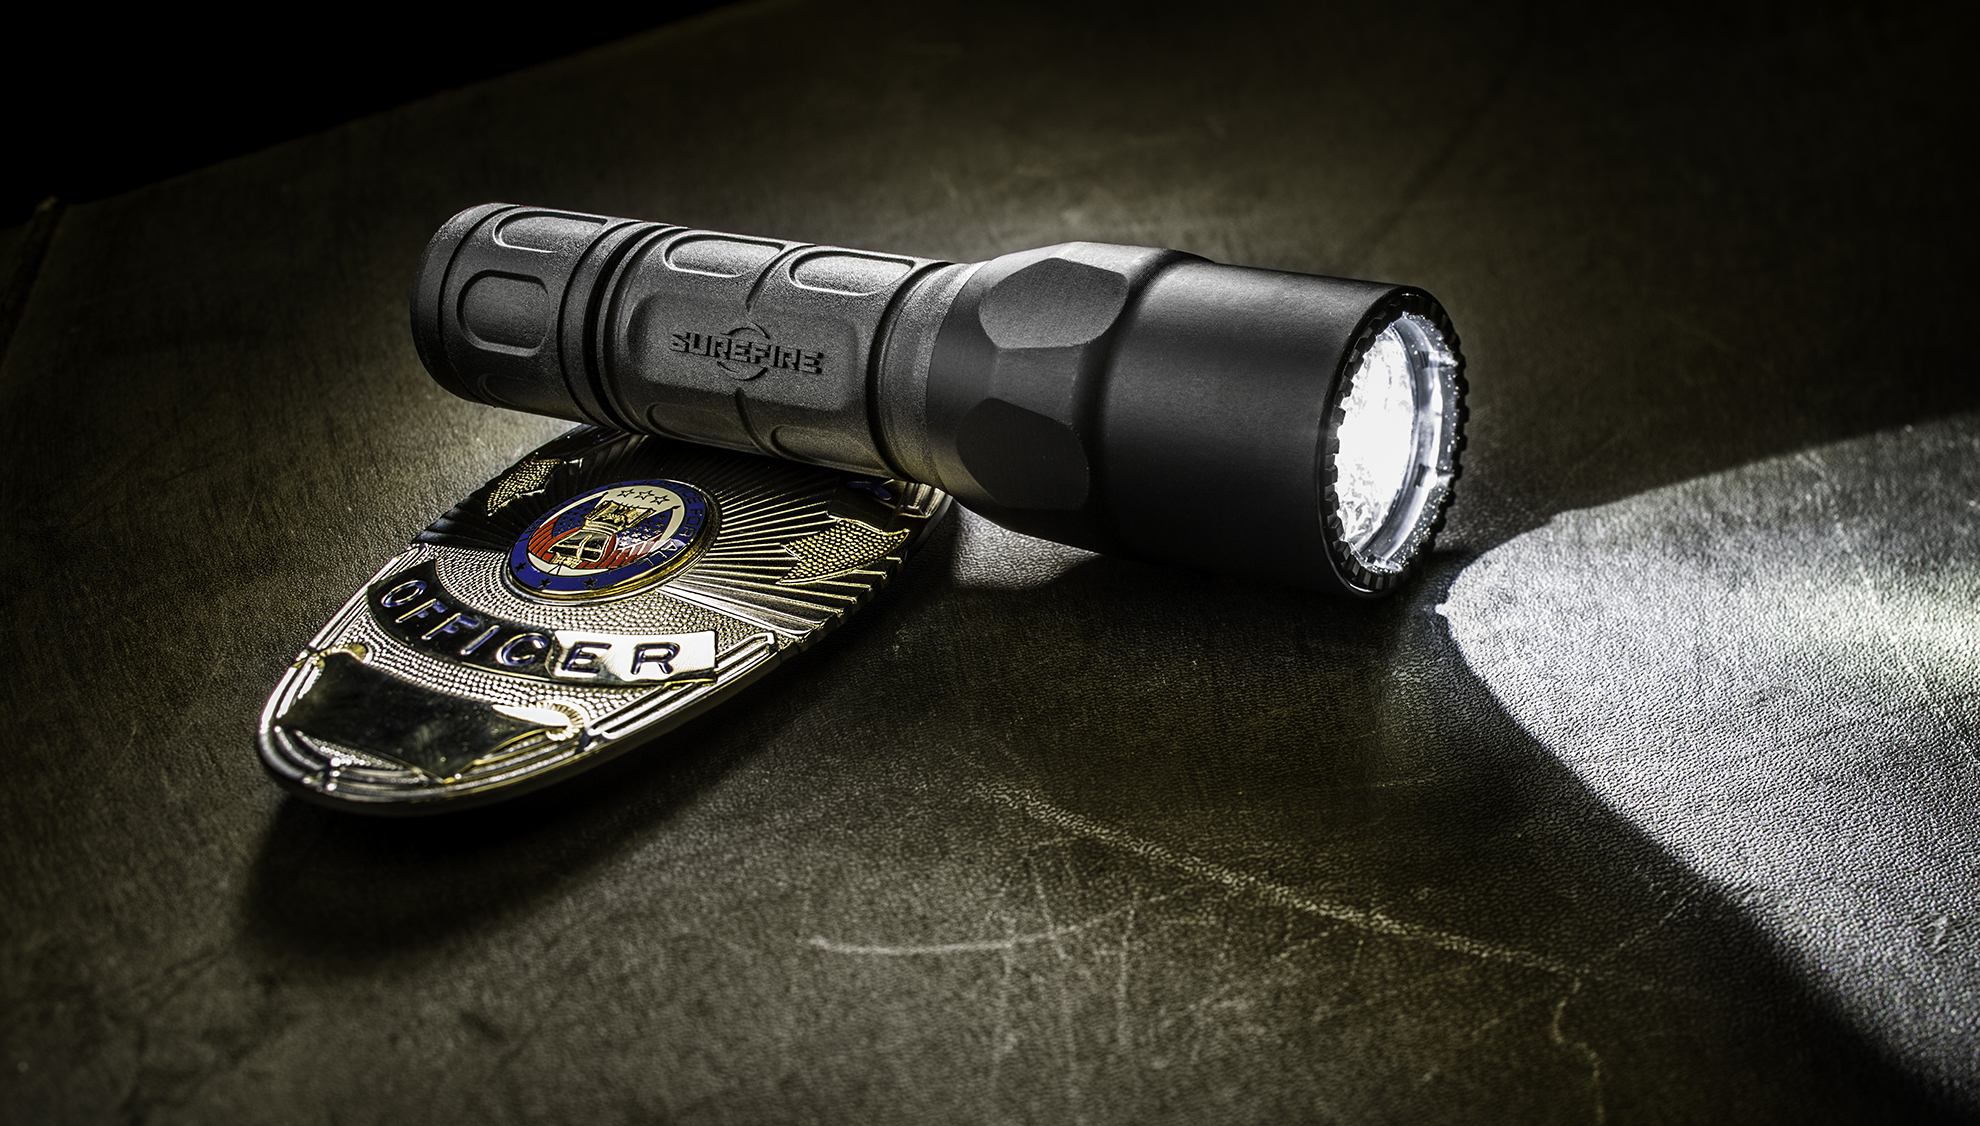 SureFire G@X LE flashlight with police badge